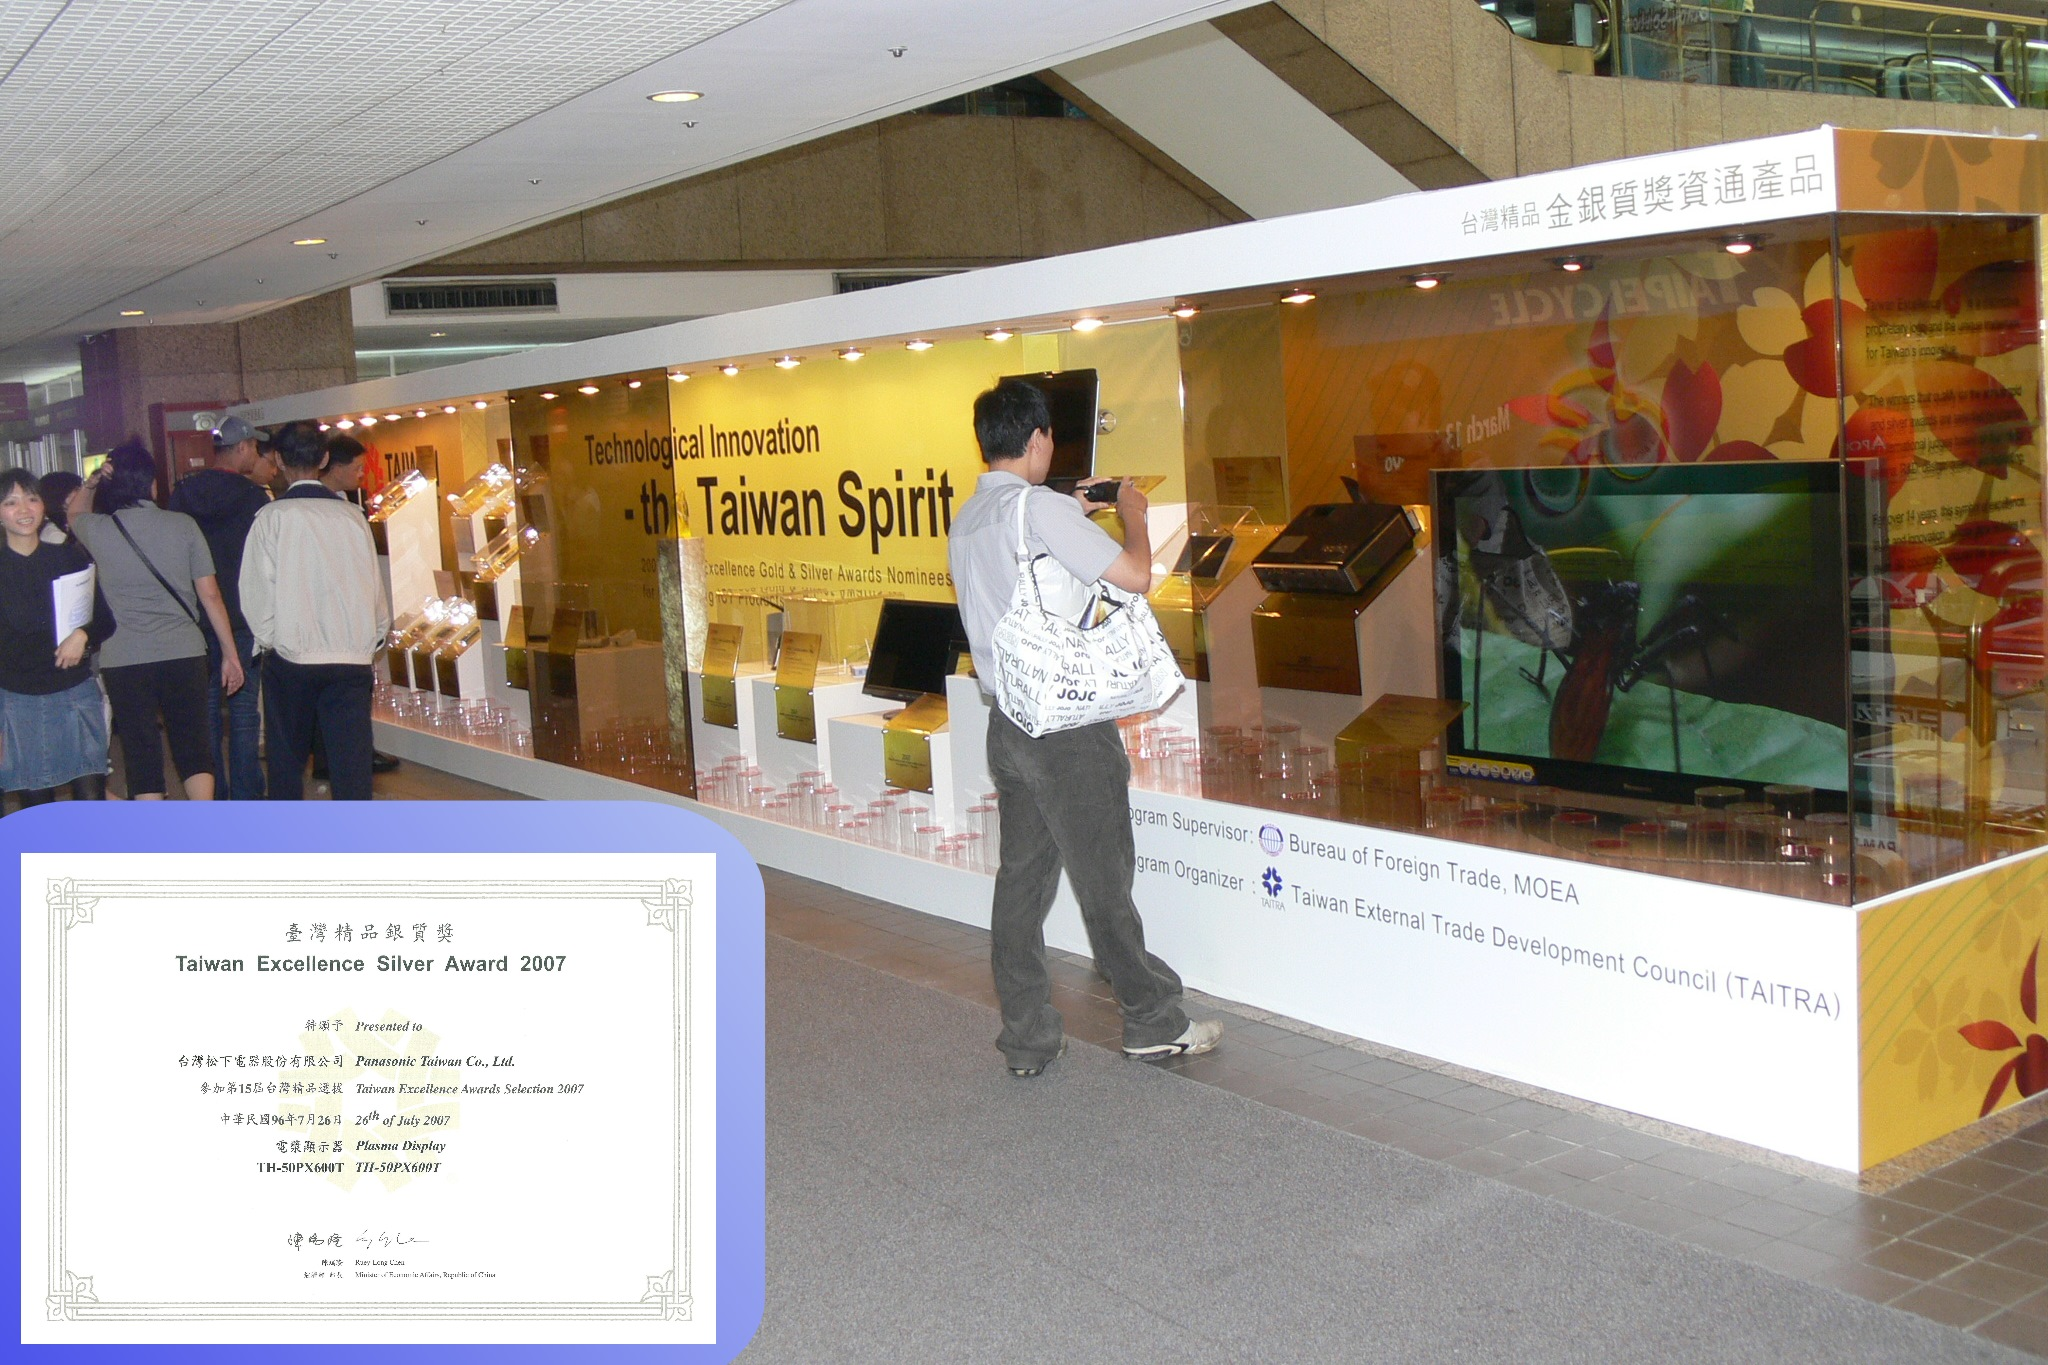 Photo of Plasma monitor won the Taiwan Excellence Silver Award 2007 and display in World Trade Center